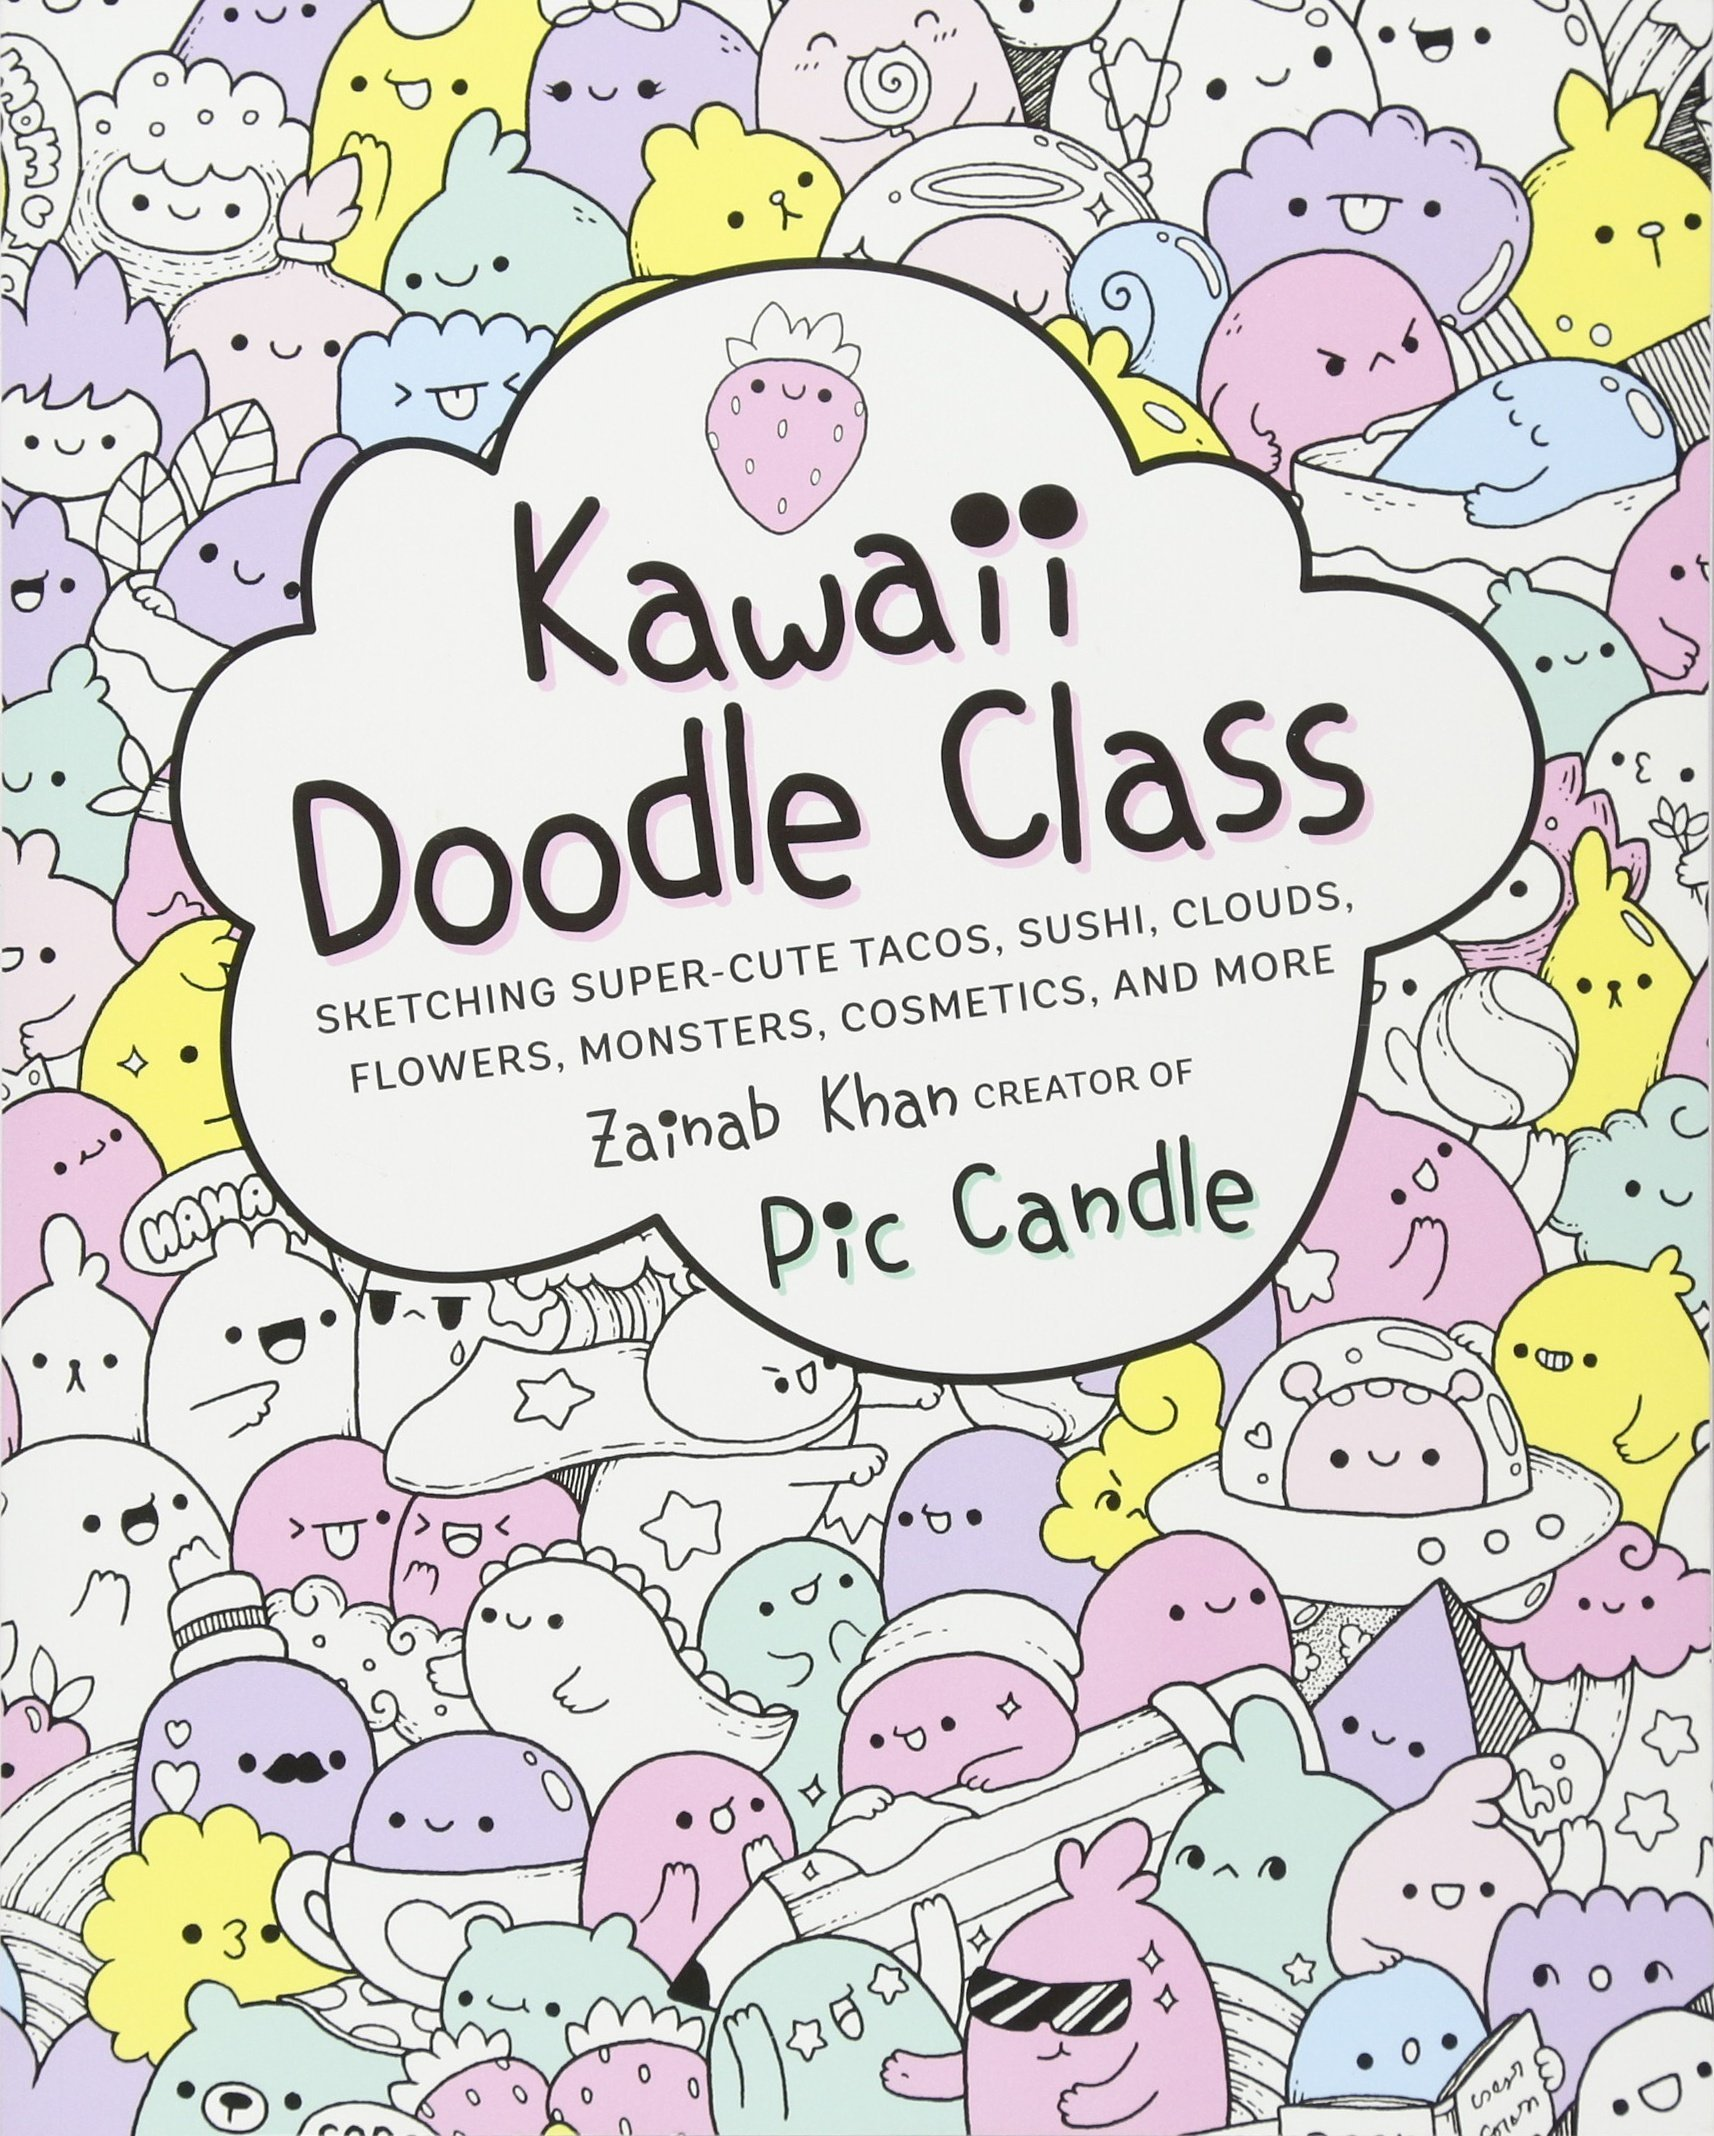 efc9428099e kawaii how to draw really cute stuff, kawaii doodle class and kawaii cakes  [hardcover] 3 books collection set - Draw Anything and Everything in the  Cutest ...